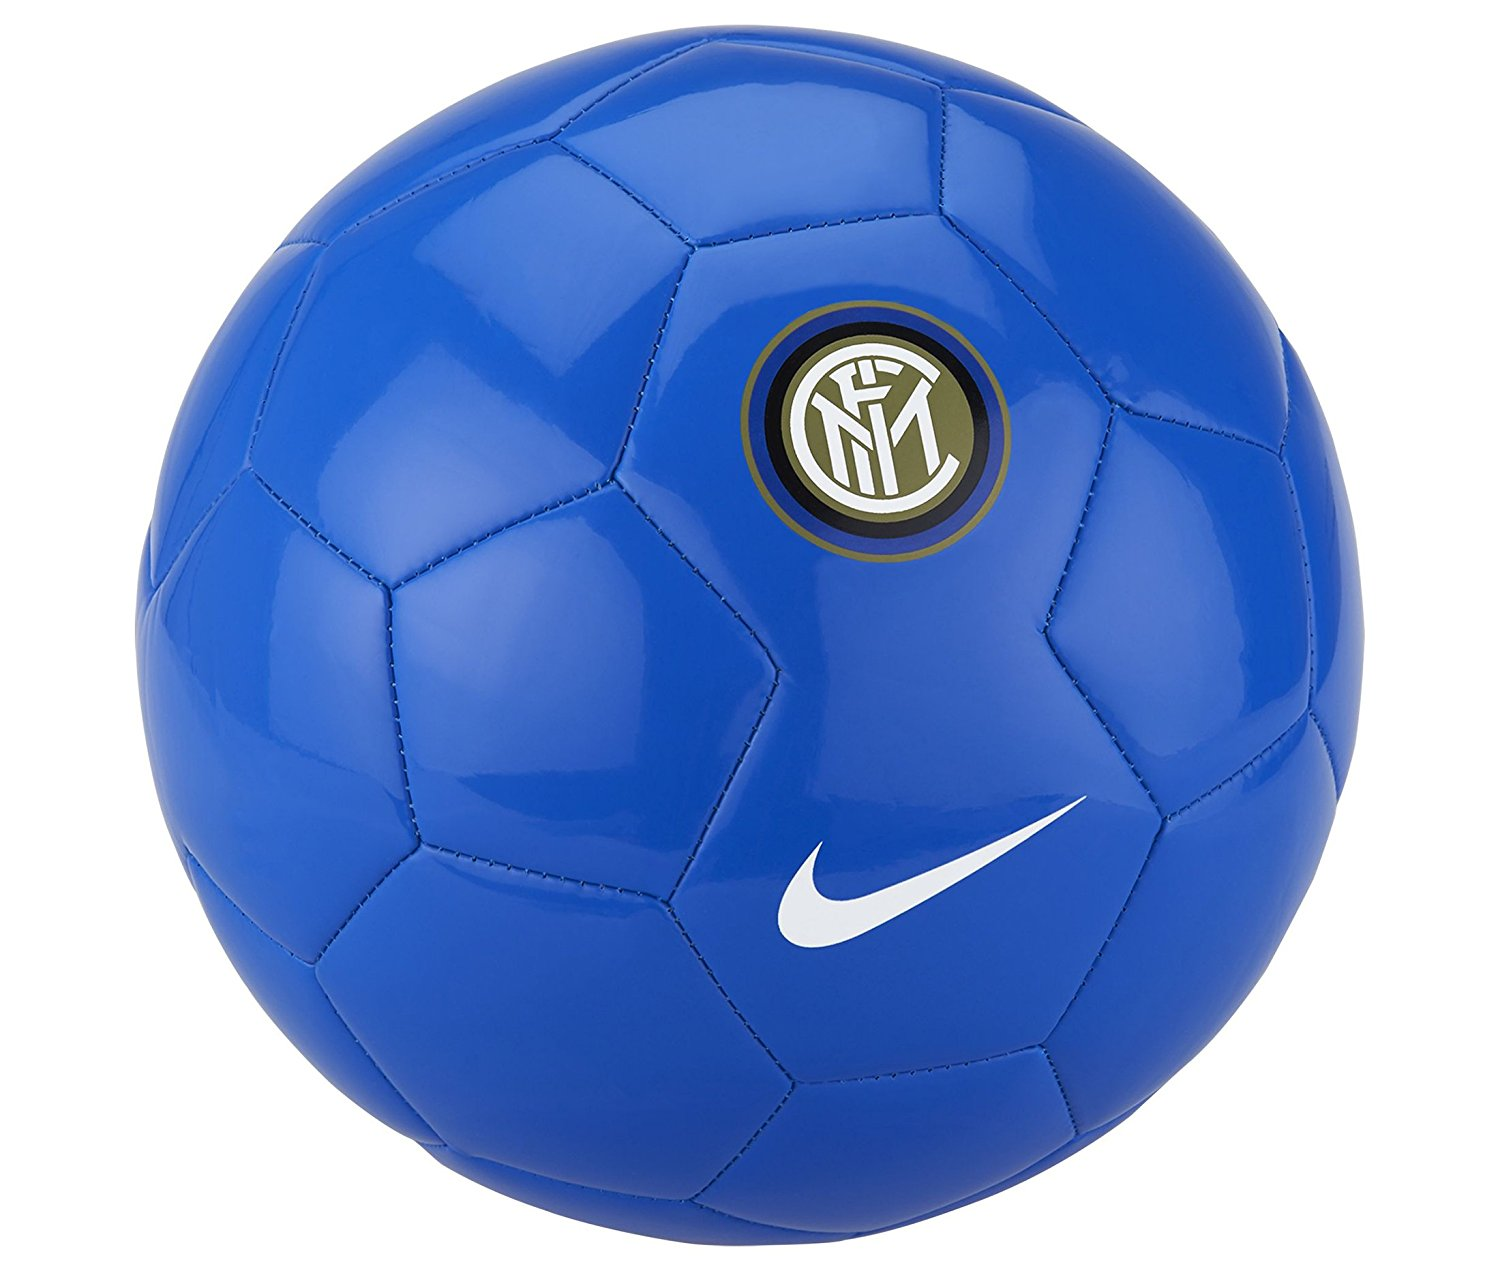 2016-2017 Inter Milan Nike Supporters Football (Blue)